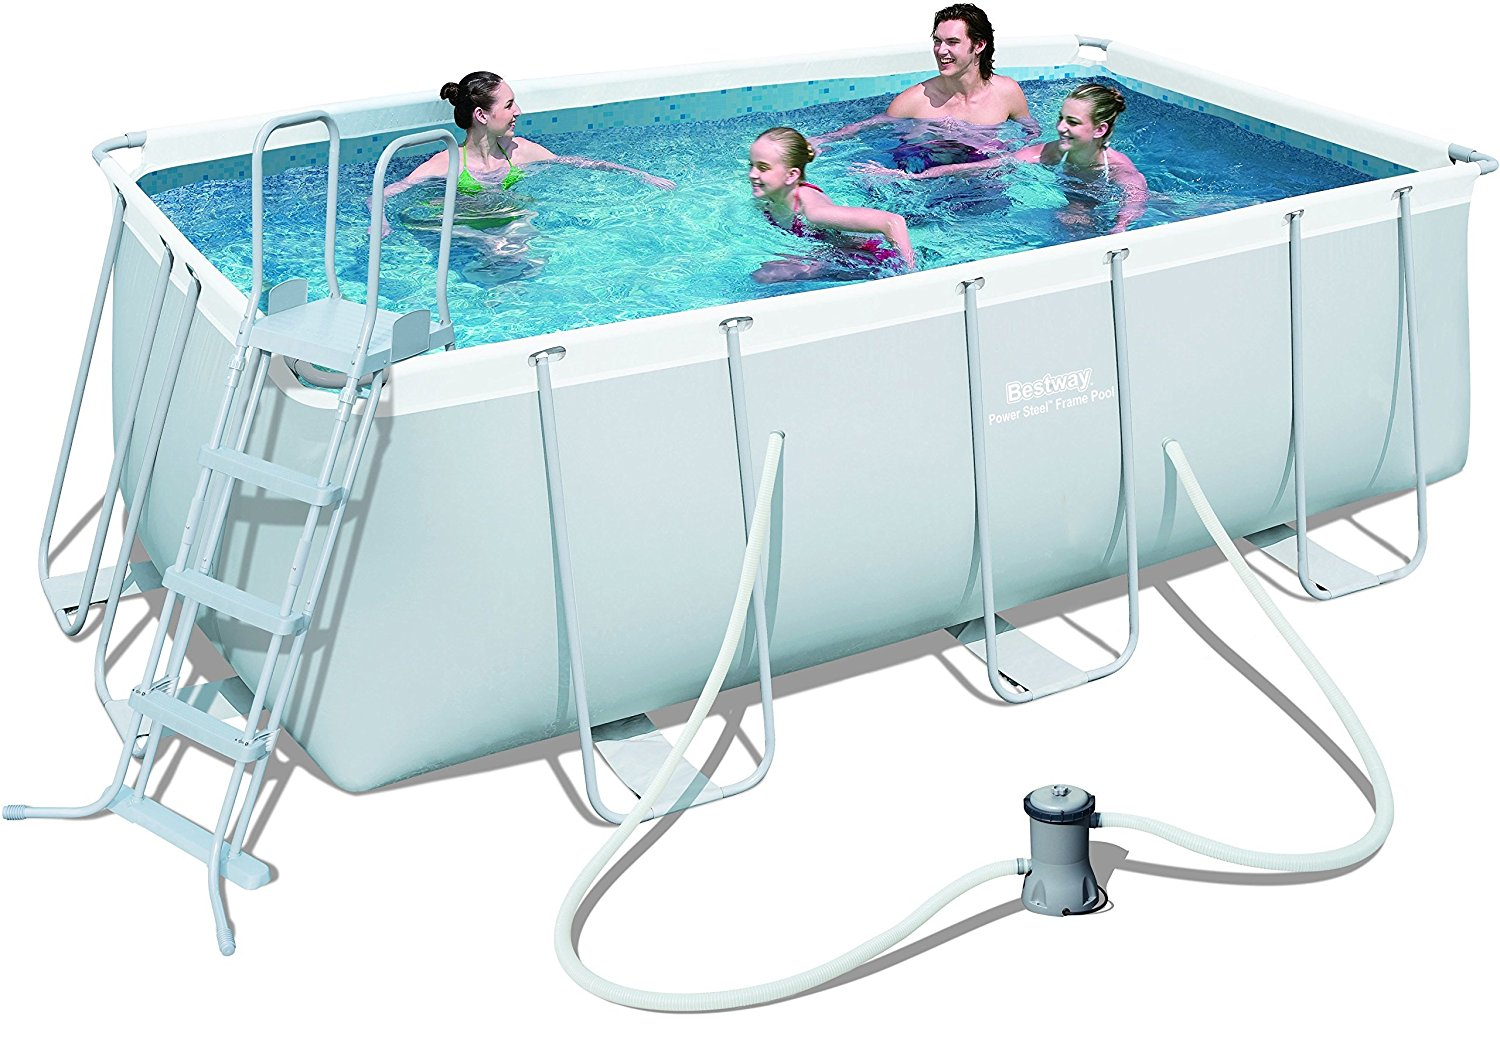 Intex Pools On Amazon Above Ground Swimming Pools Amazon Swimming Pools Photos